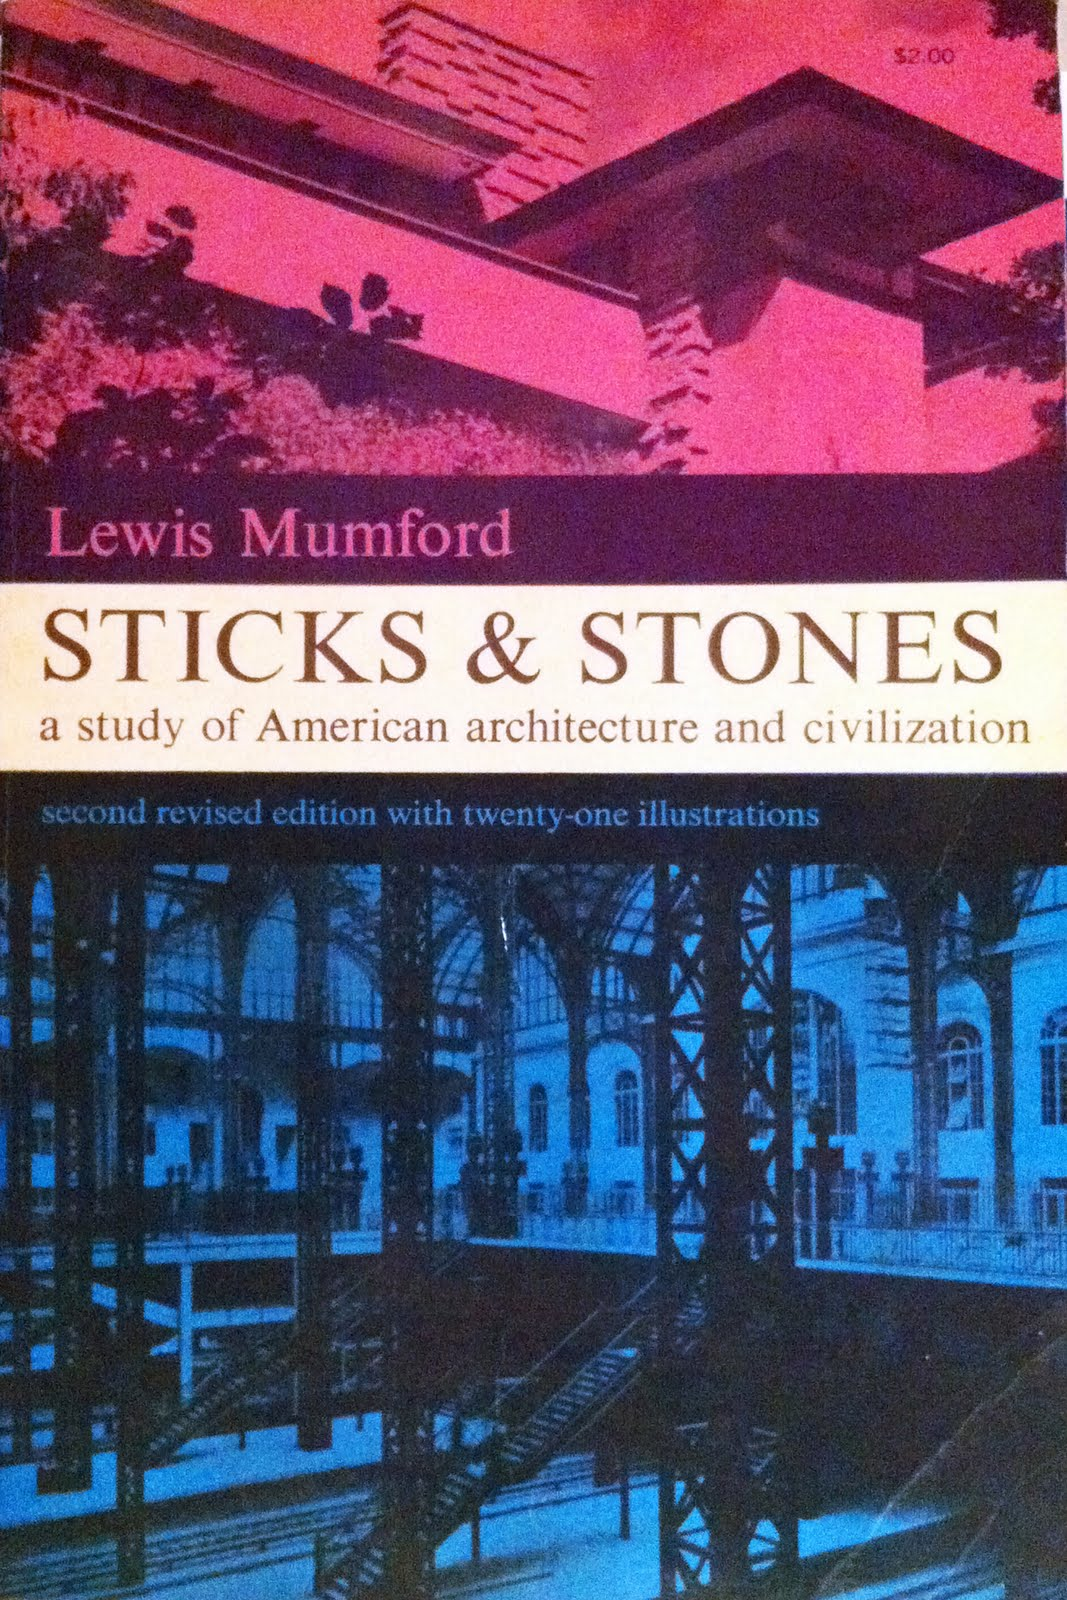 Lewis Mumford's quote #1